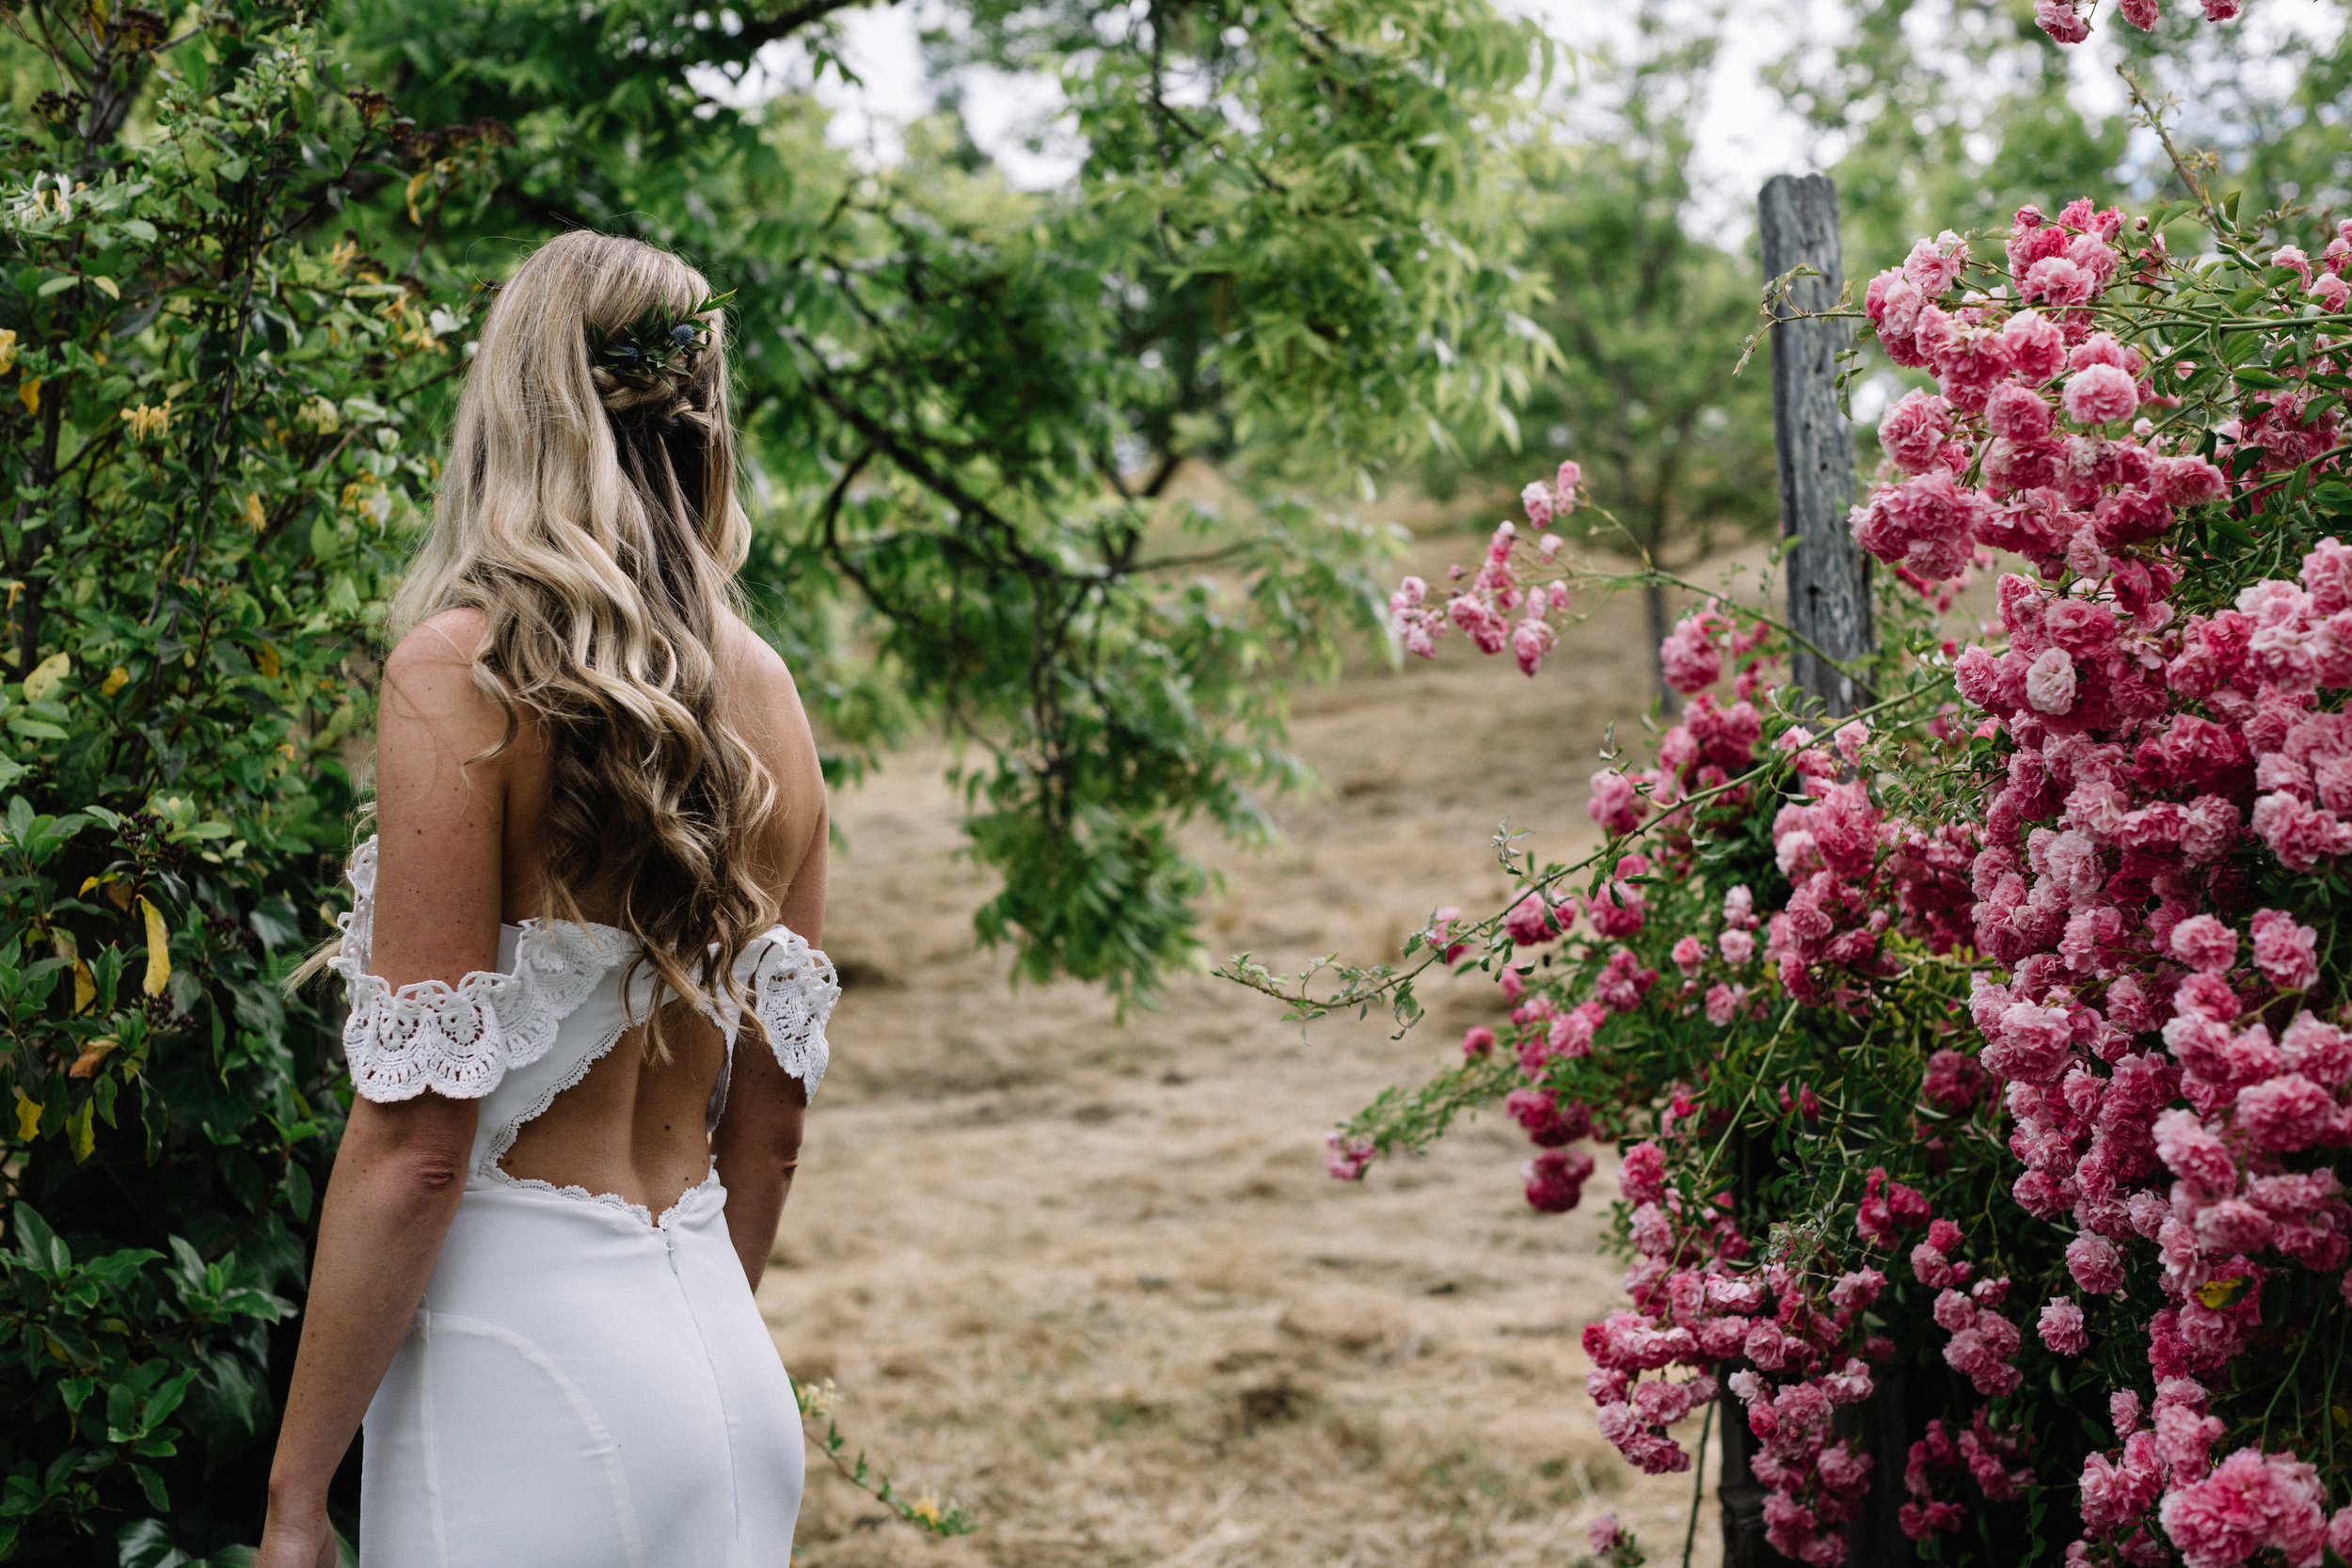 HOW TO HAVE A GREEN WEDDING - TIPS ON SUSTAINABILITY FROM INSIDE THE INDUSTRY